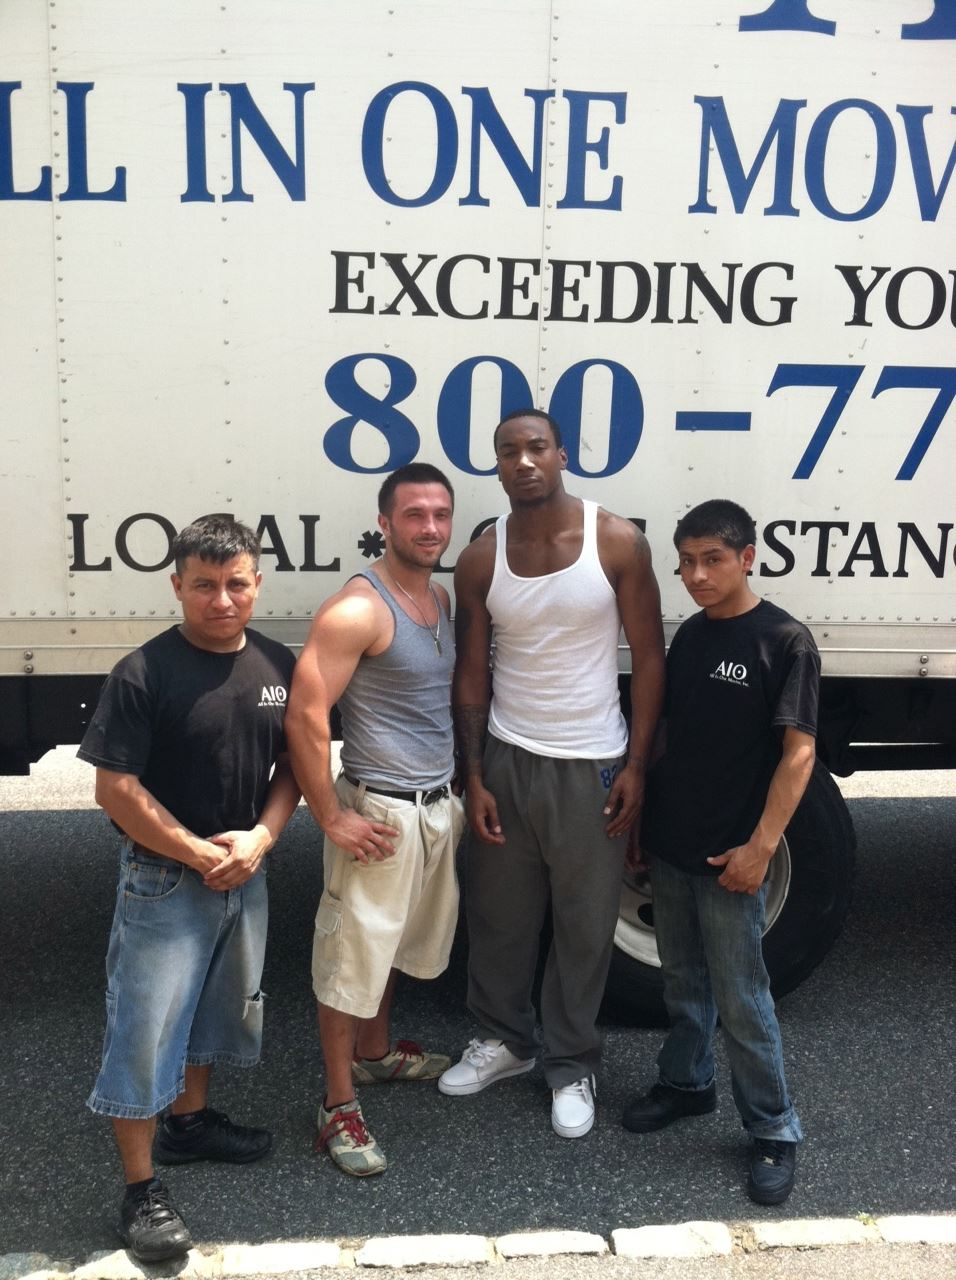 B2B Moving Bergen County - PIANO AND ORGAN MOVING